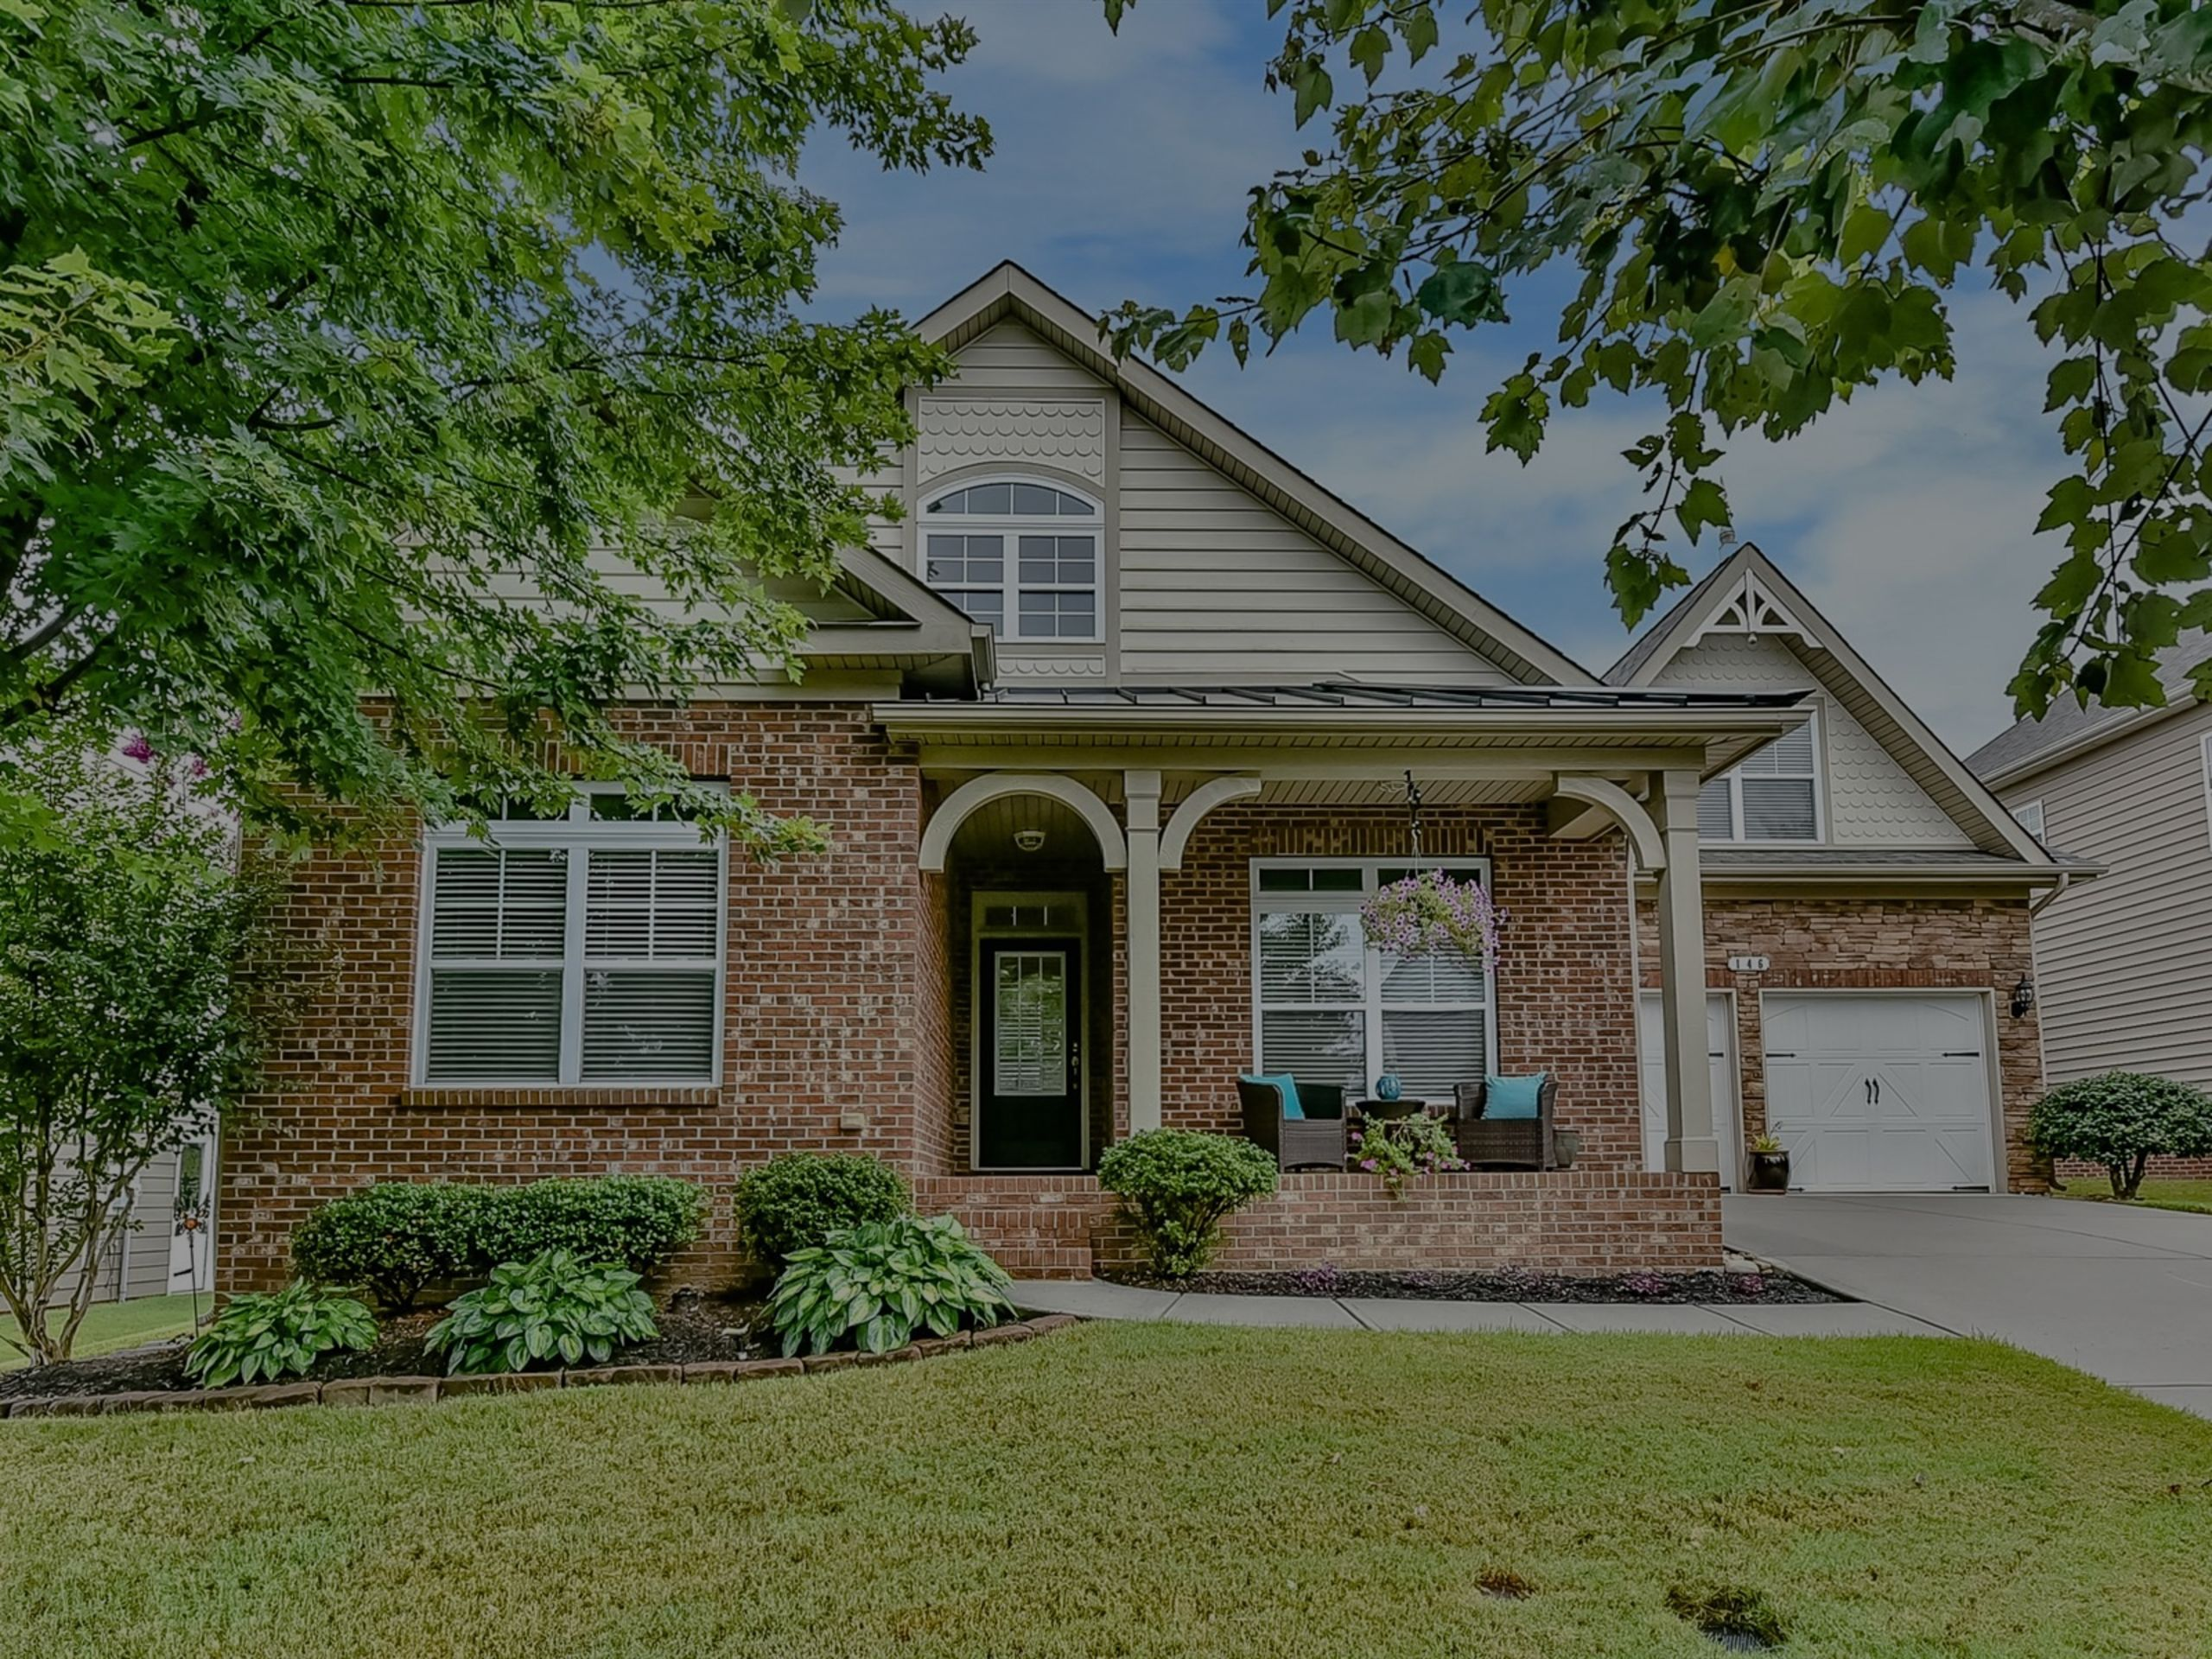 146 Rainberry Drive, Mooresville, NC 28117- Listing Information and Walking Tour Video